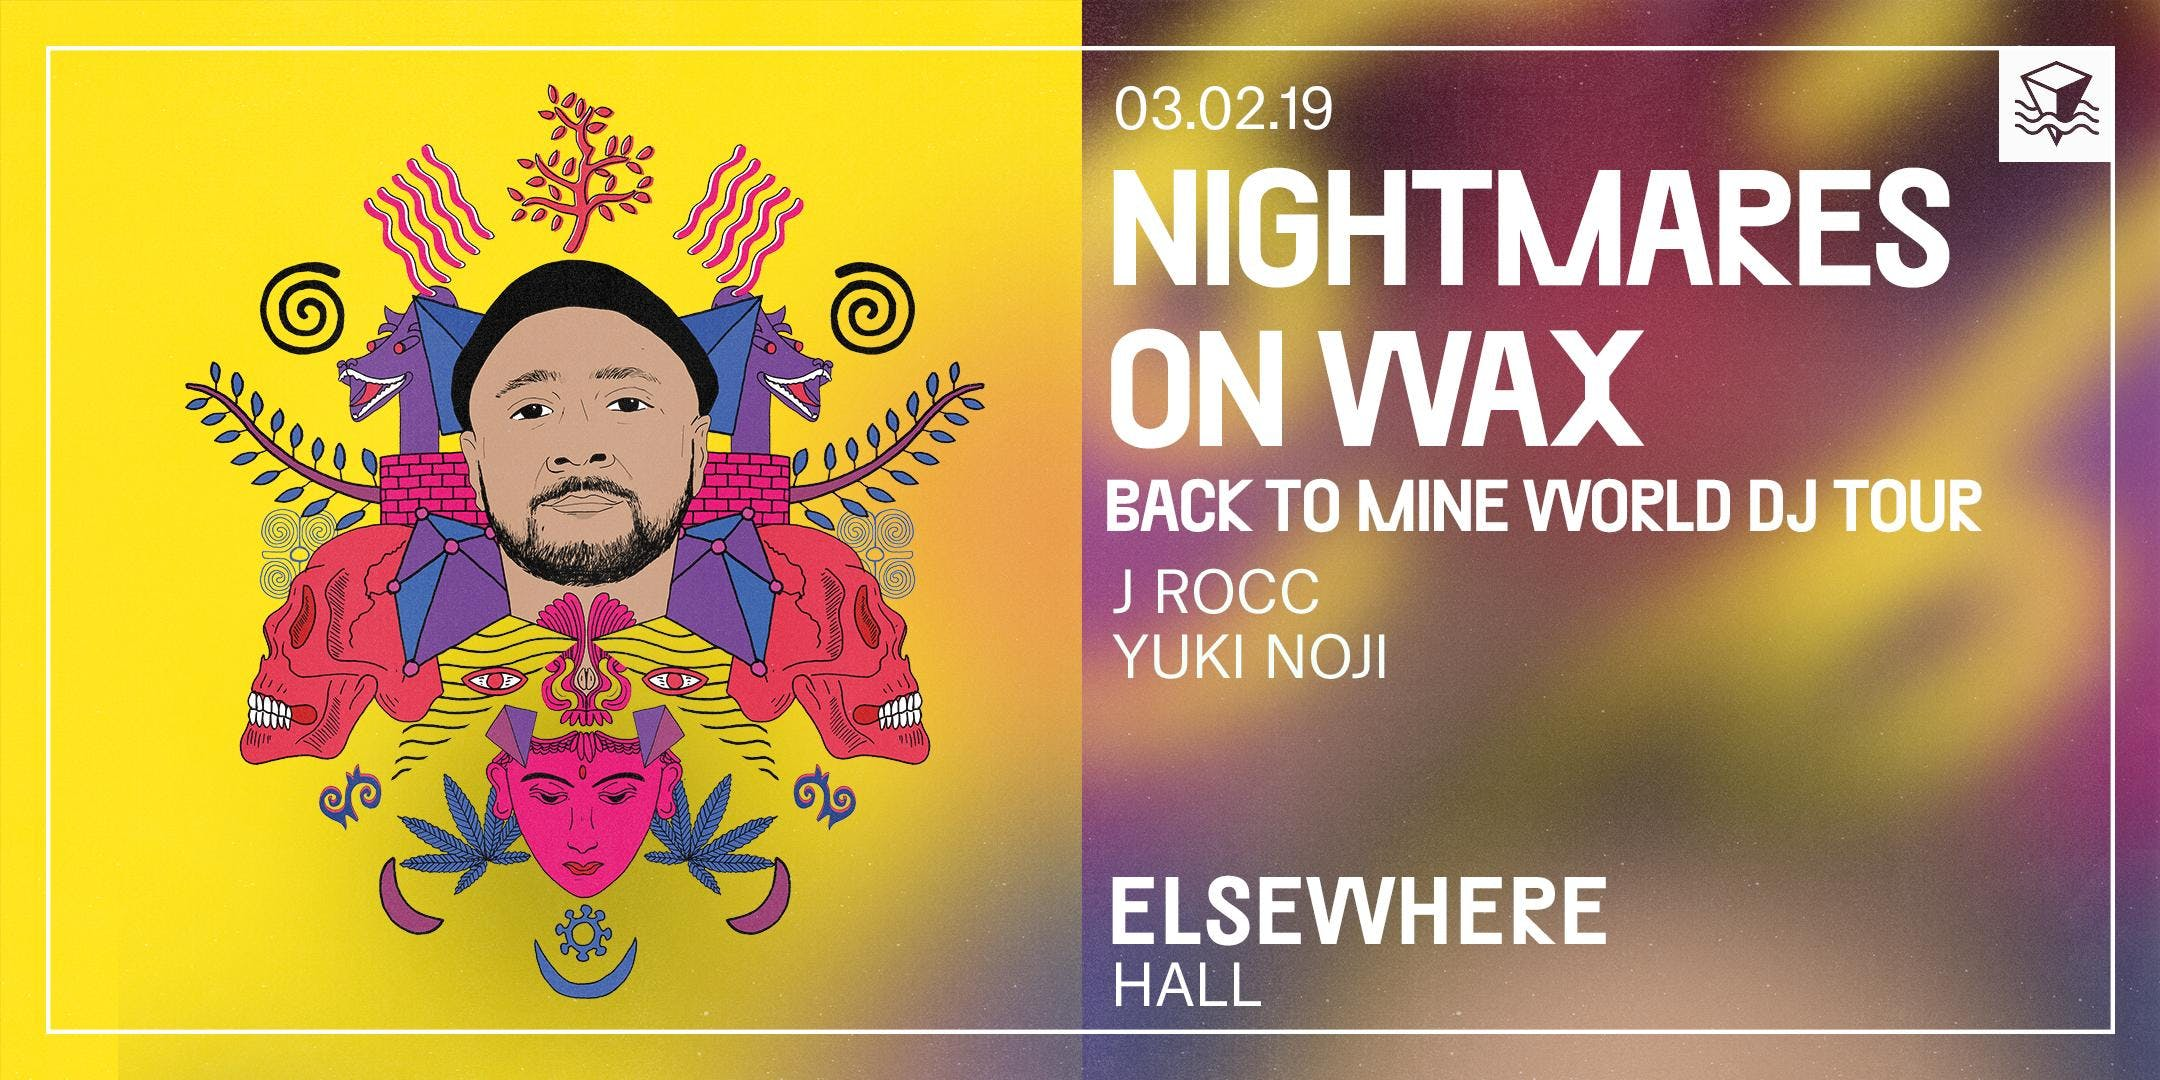 Nightmares on Wax (DJ Set), J Rocc & Yuki Noji